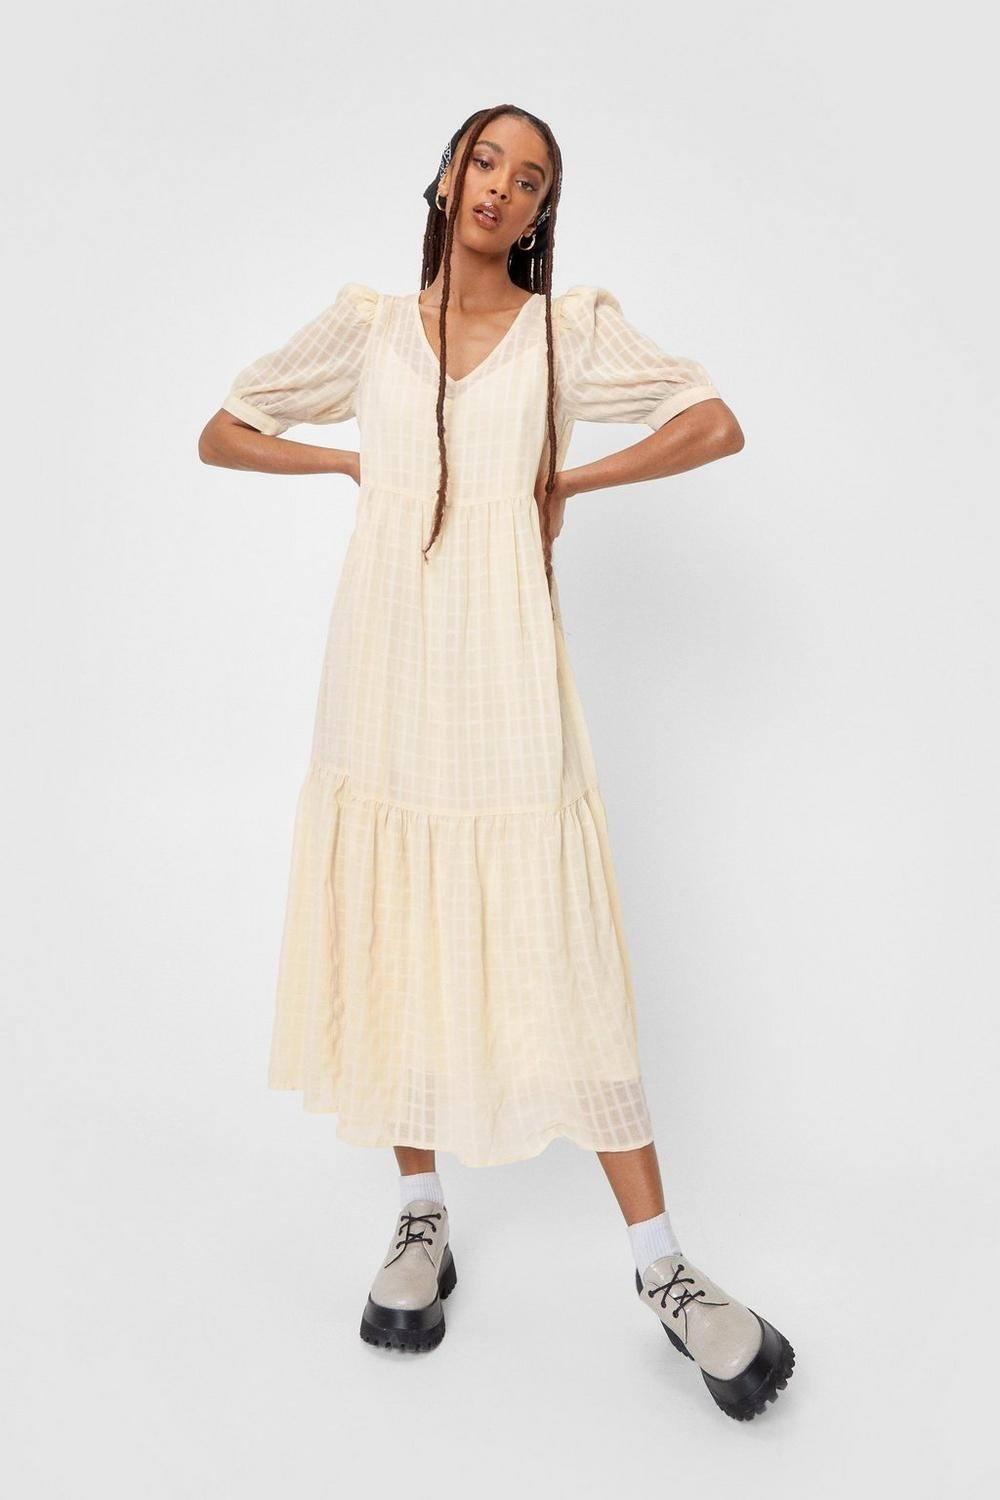 a maxi dress with subtle puff sleeves